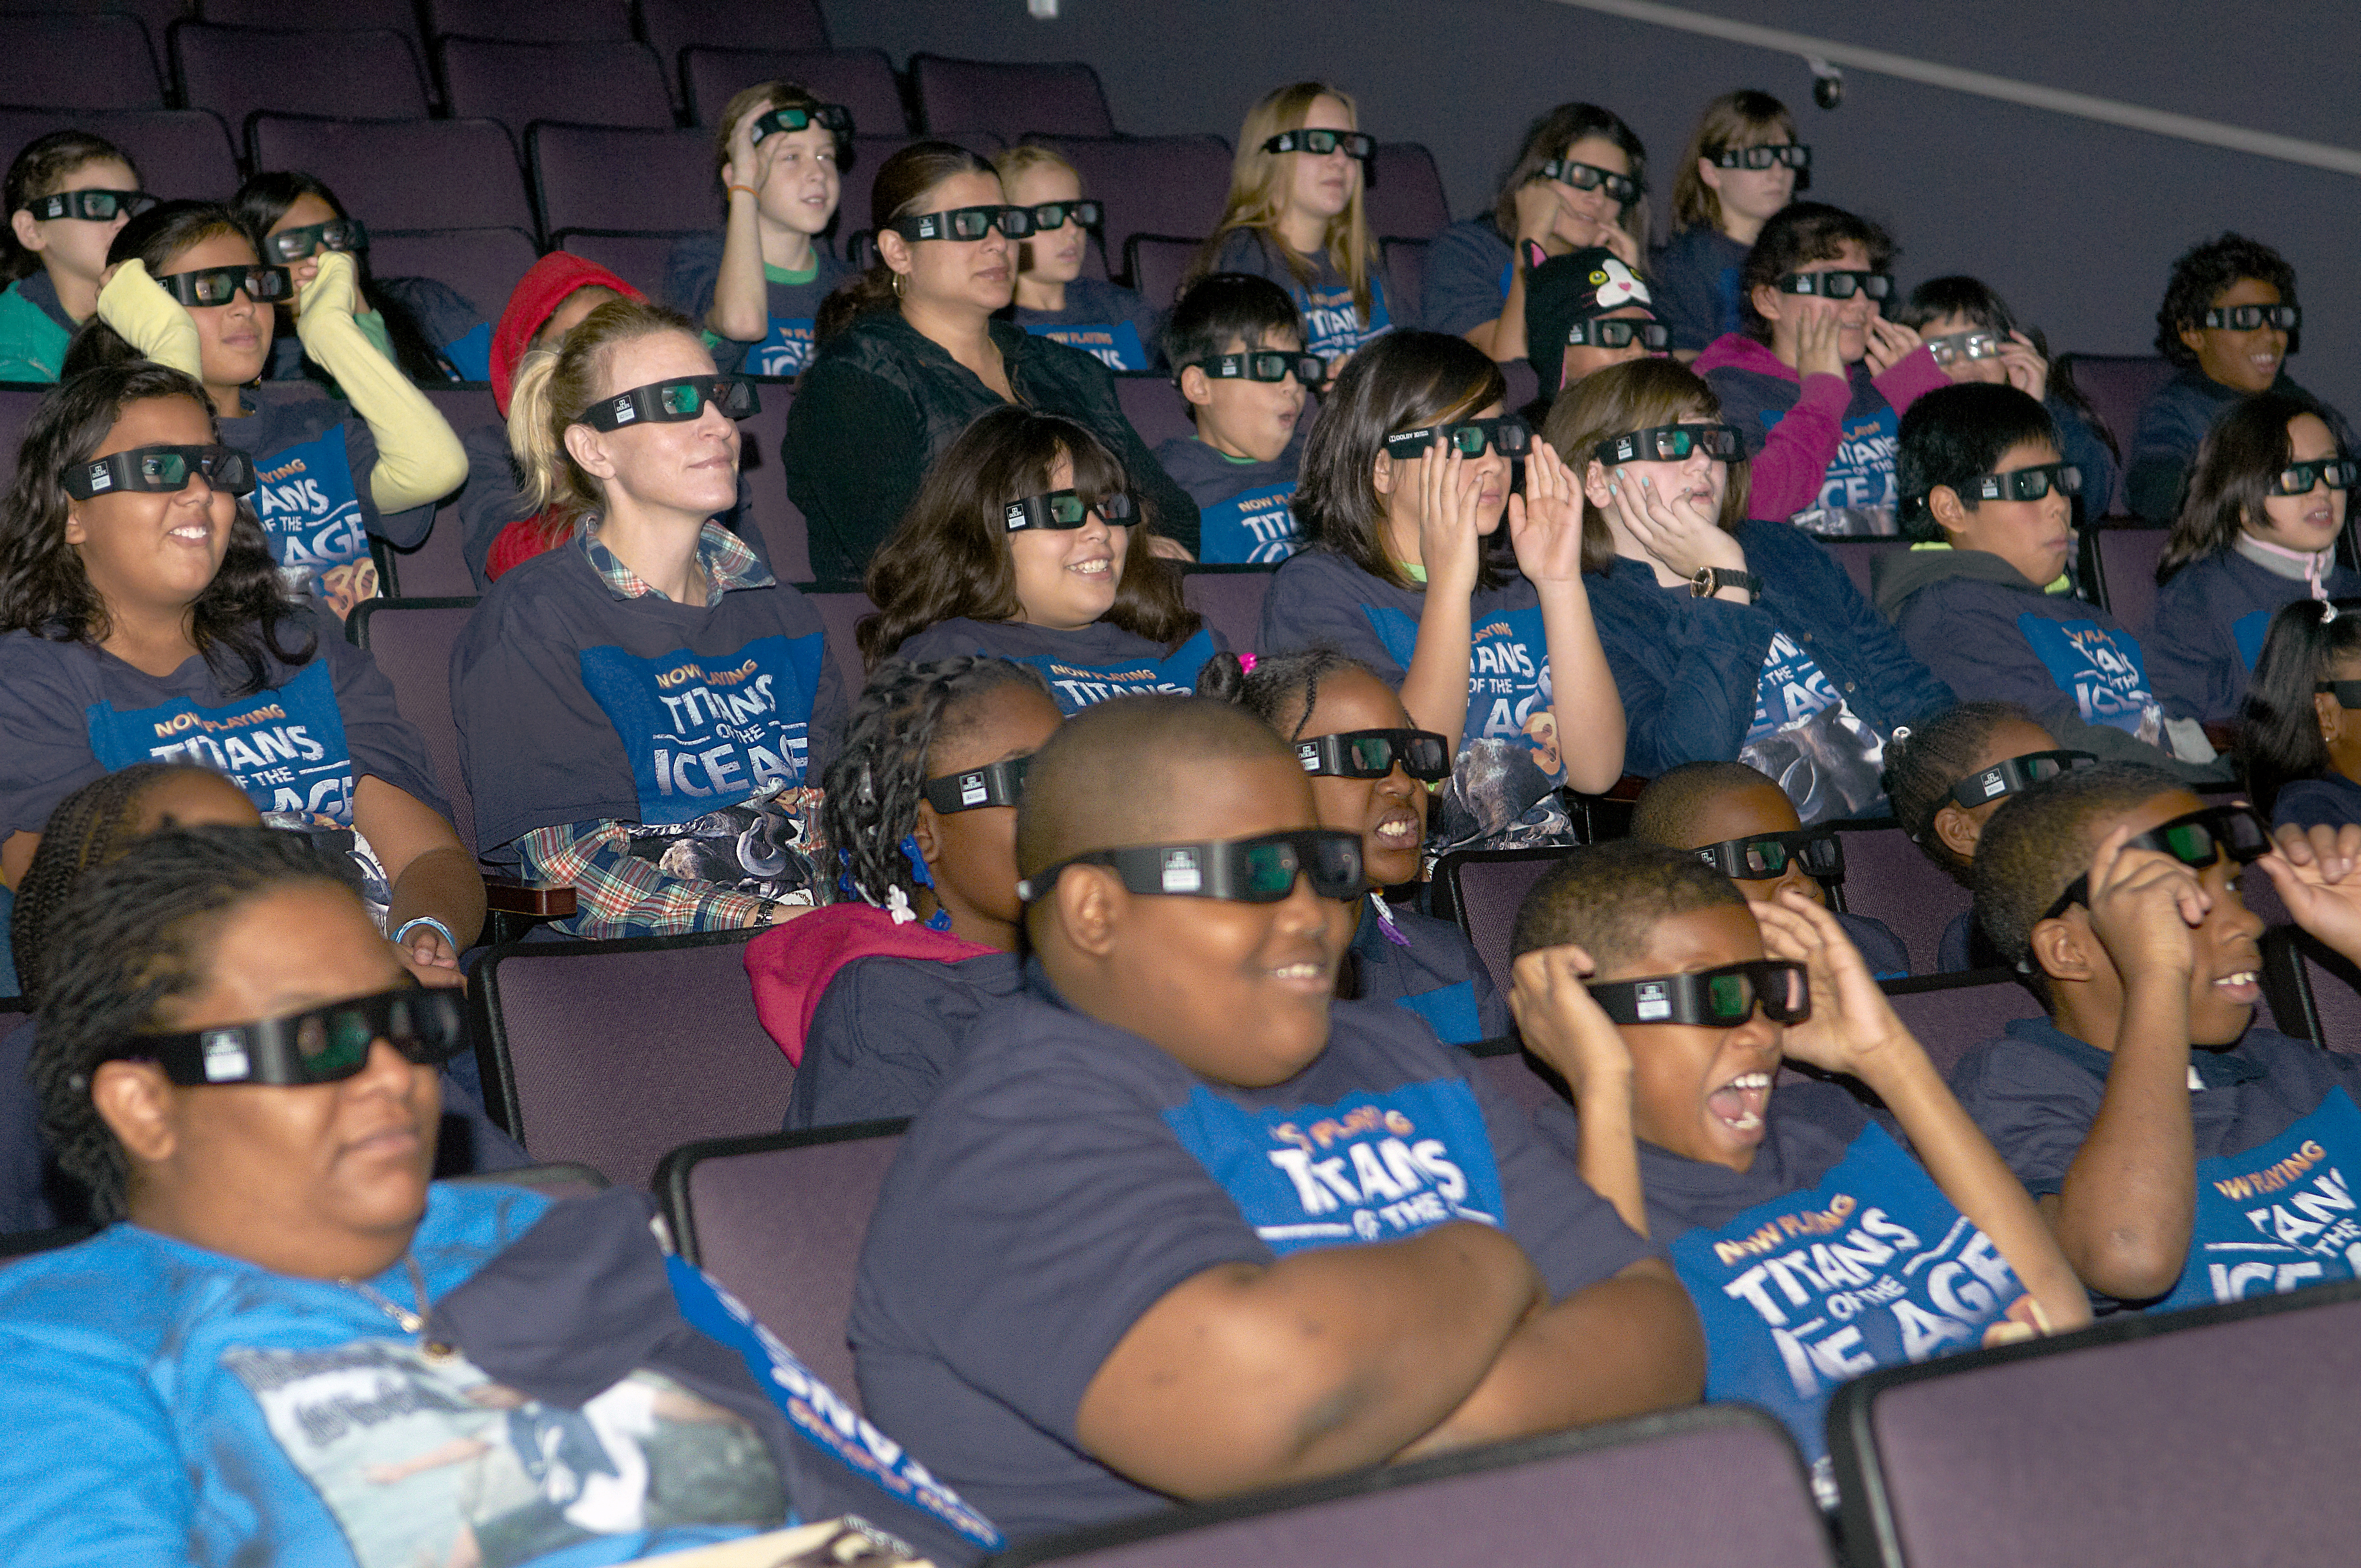 A group of students wearing black glasses sit in stadium seating to watch a 3D movie at the Field Museum.